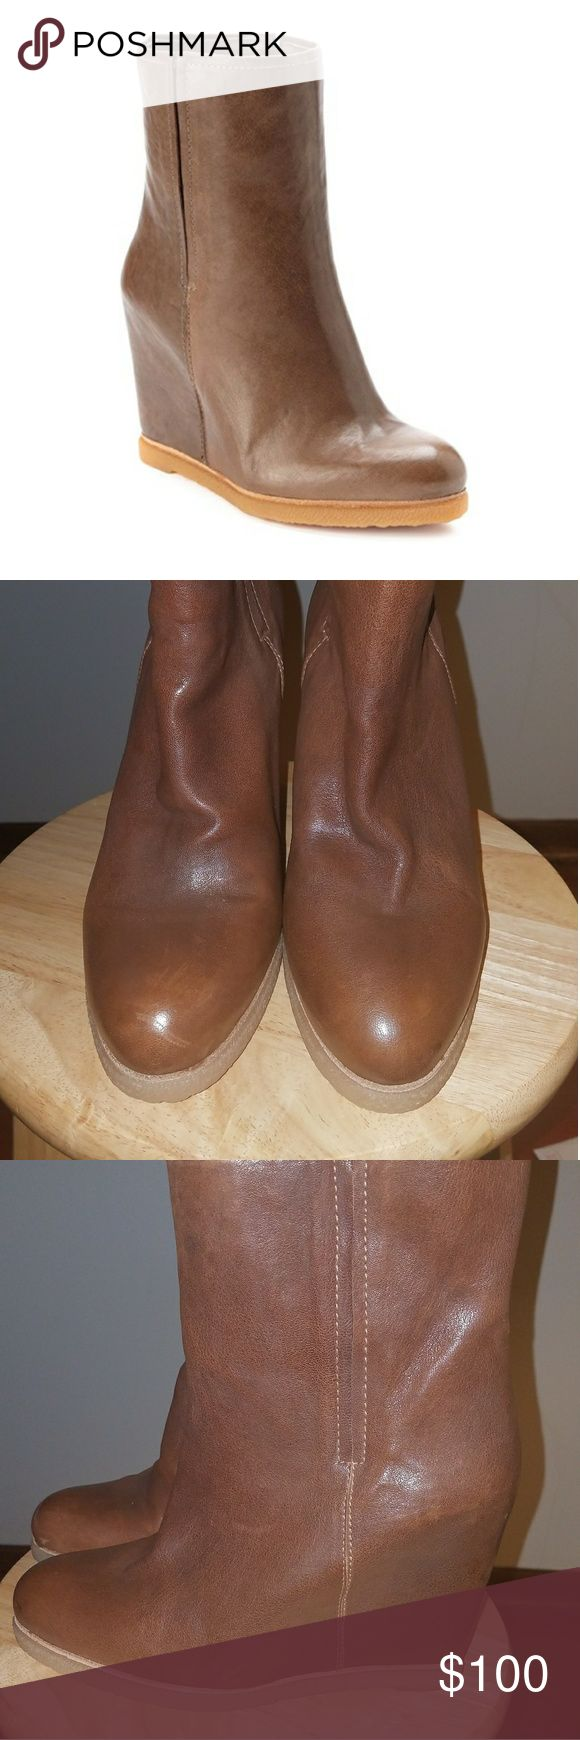 Stuart Weitzman Bootscout Leather Wedge Ankle Boot Great  Condition.. Pictures  speak for themselves1 MAKE ME AN OFFER Stuart Weitzman Shoes Wedges